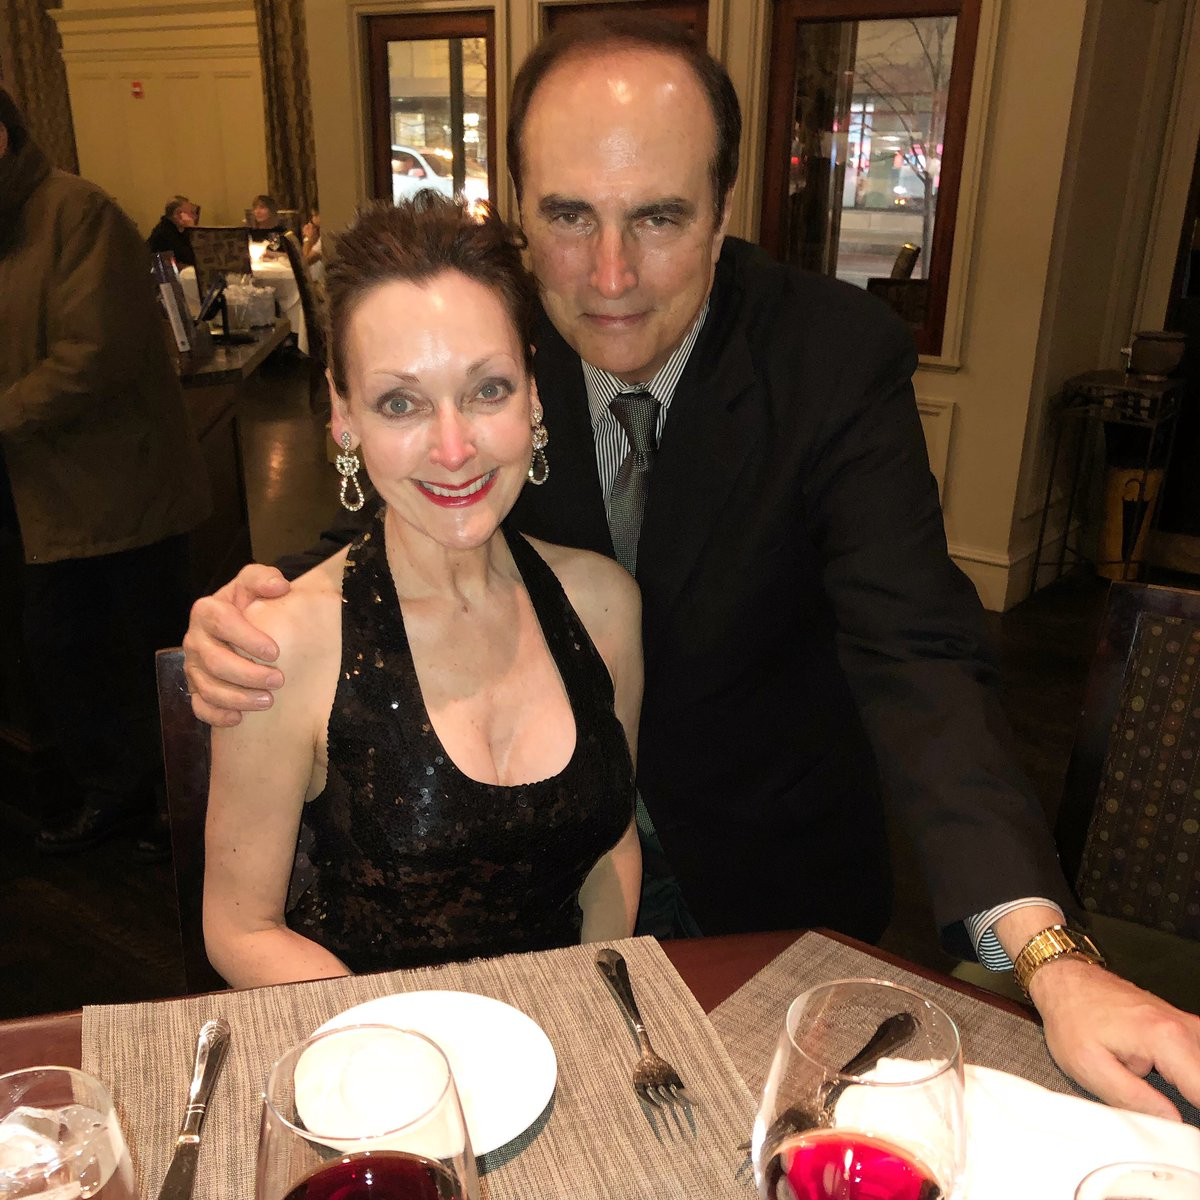 Saturday date night: a shared birthday dinner with my sweetheart (mine was last week; his is next week).